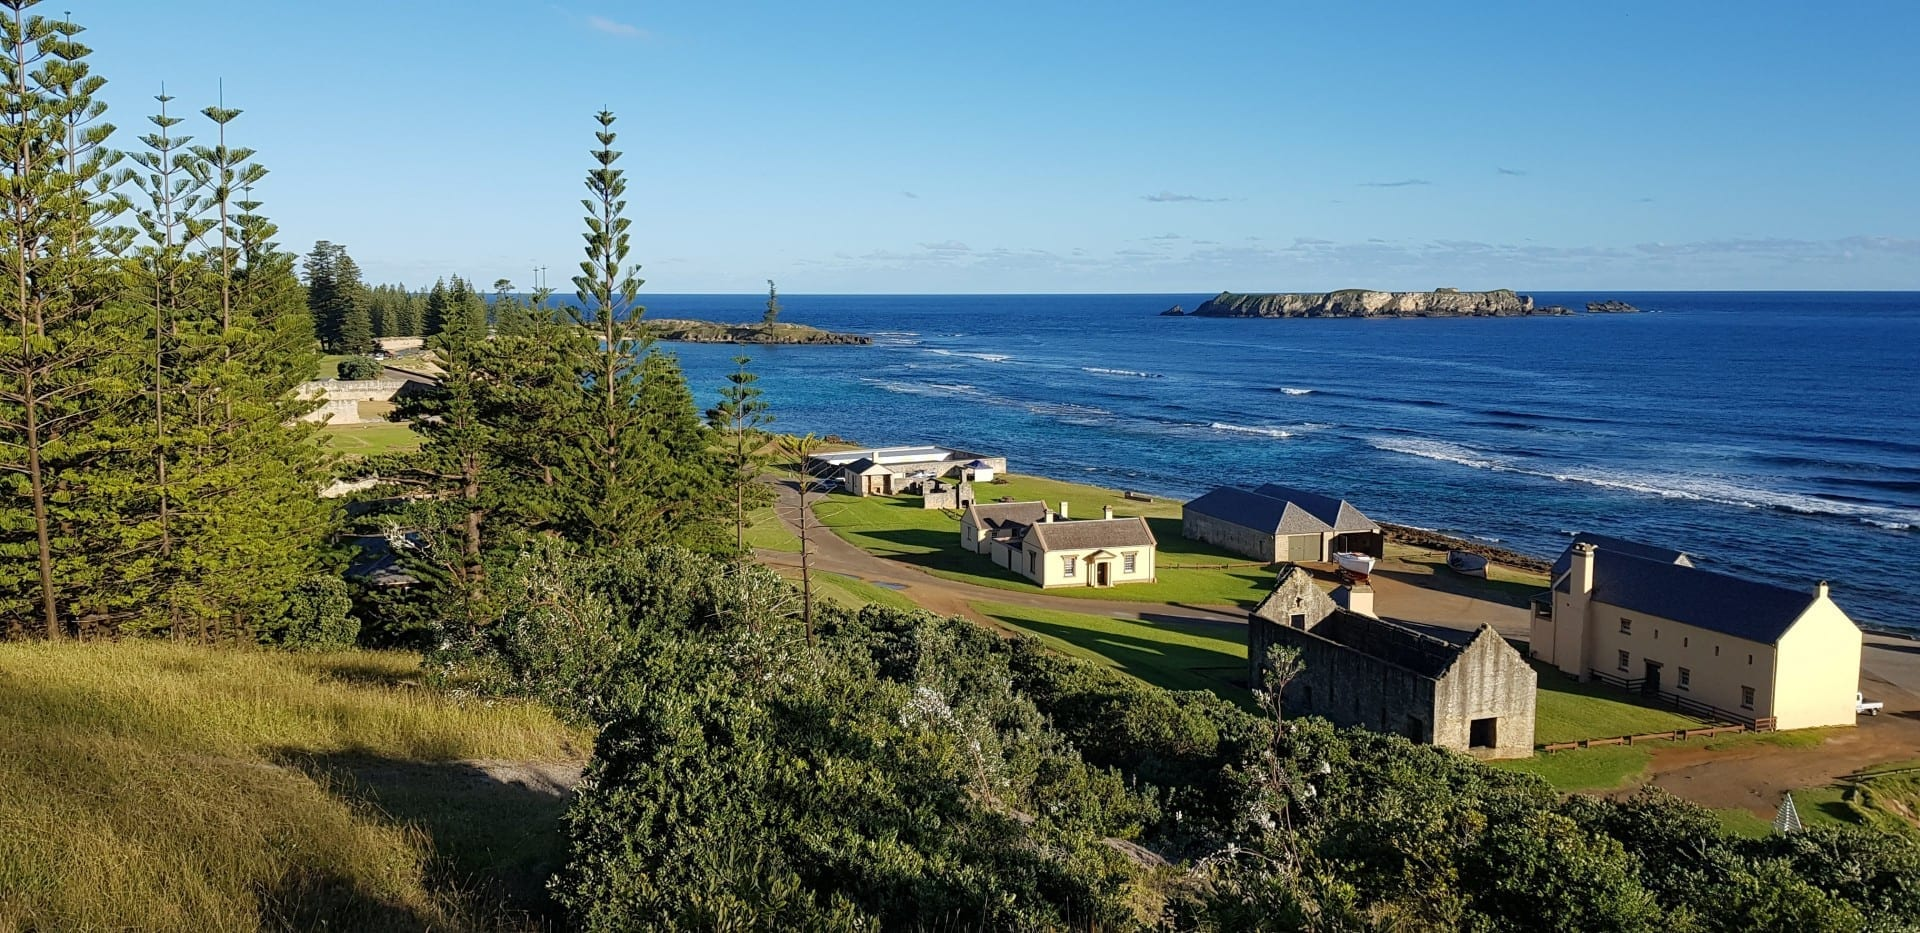 Kingston desde Flagstaff Hill, Isla de Norfolk Norfolk Island Australia